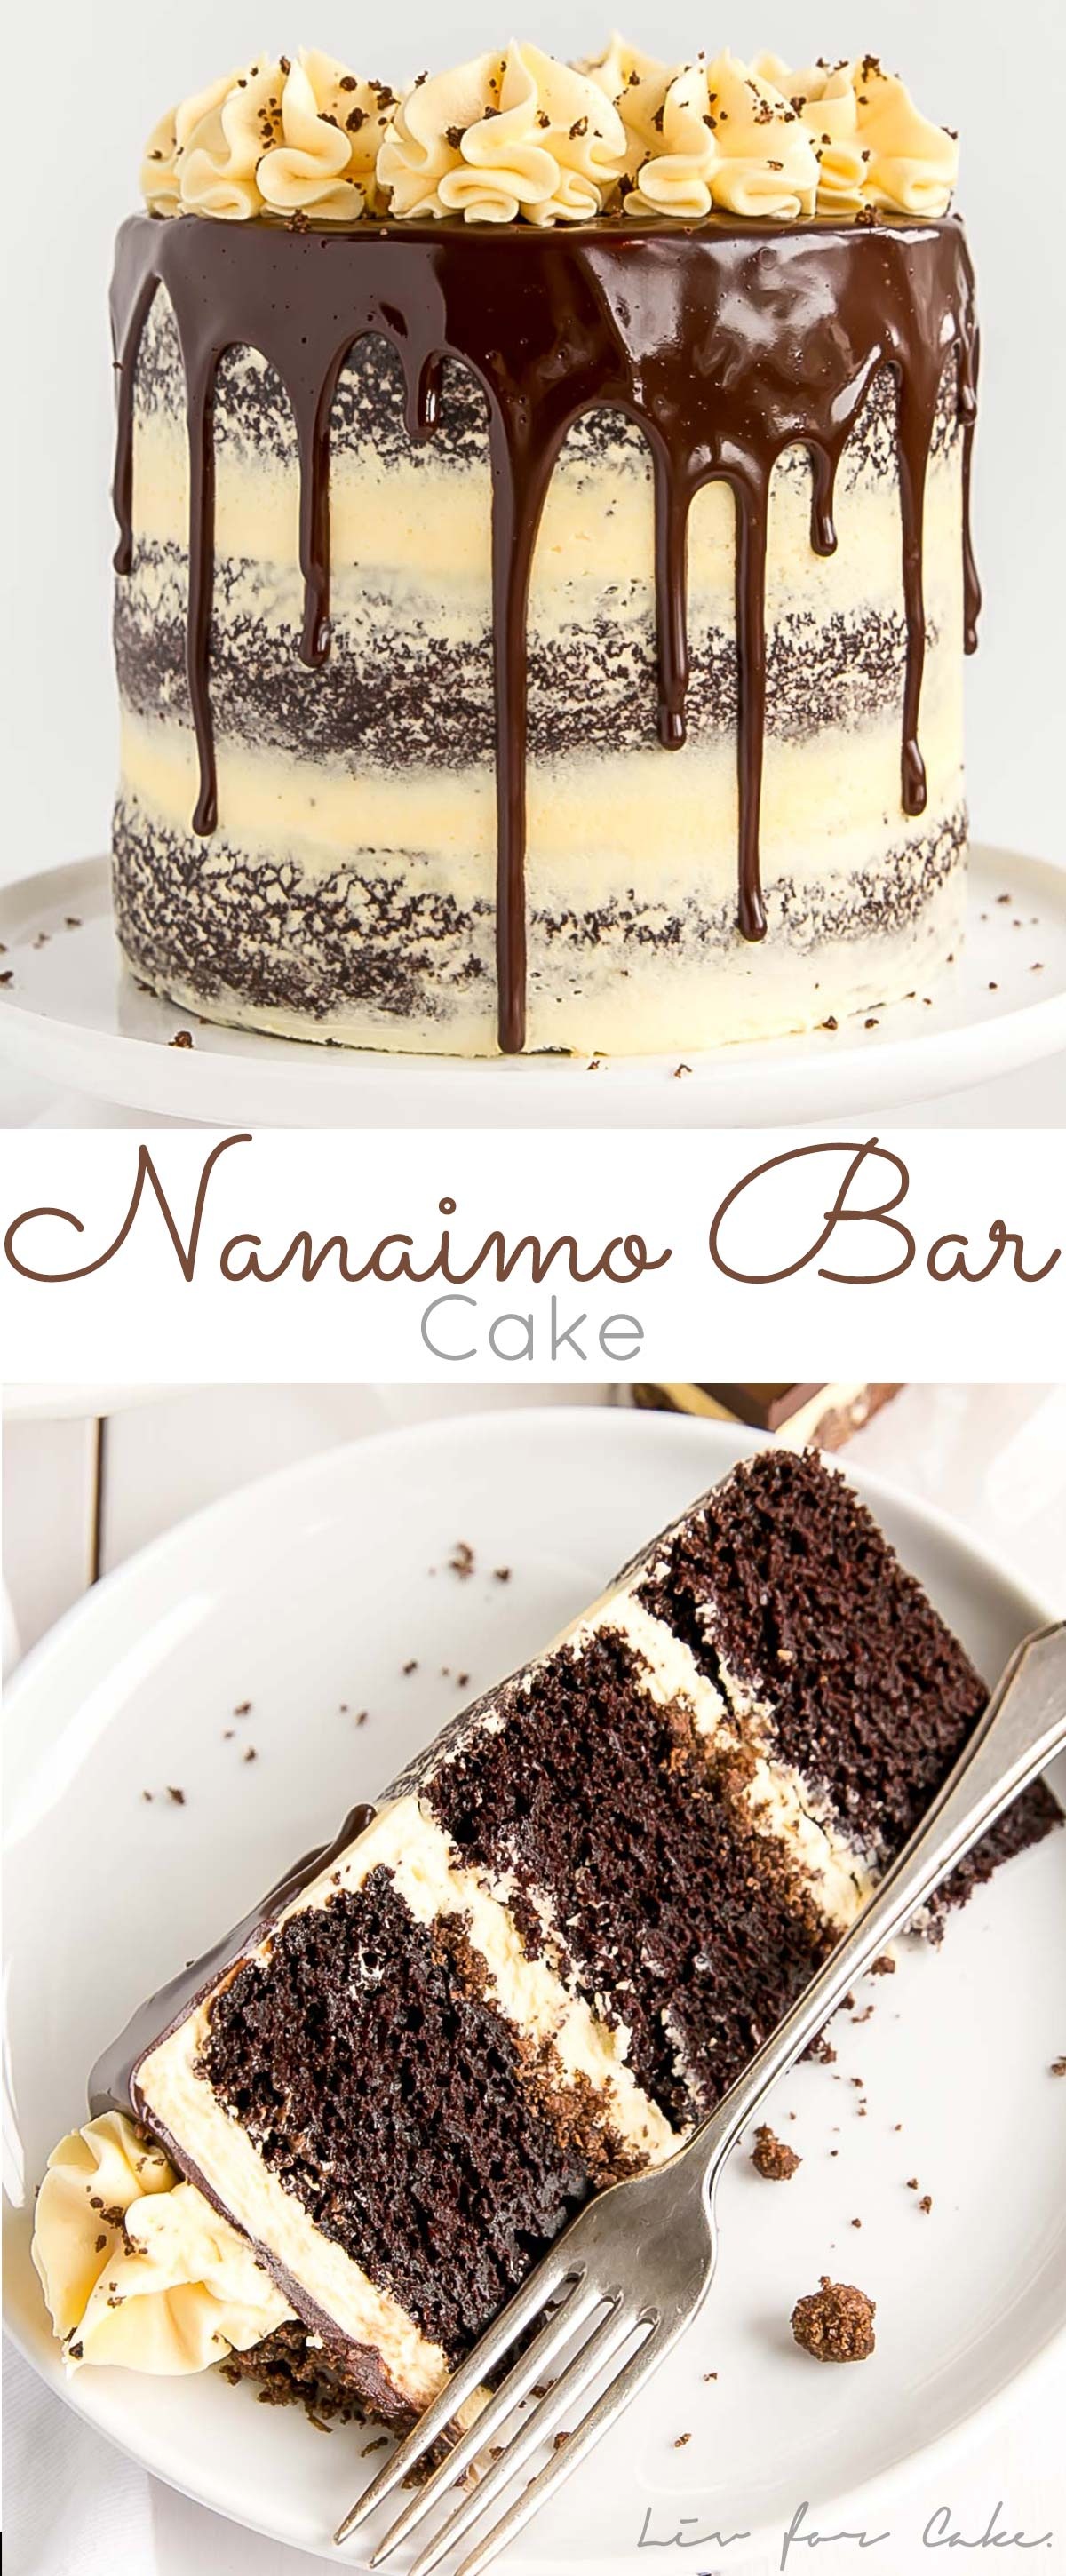 Nanaimo Bar Cake Collage